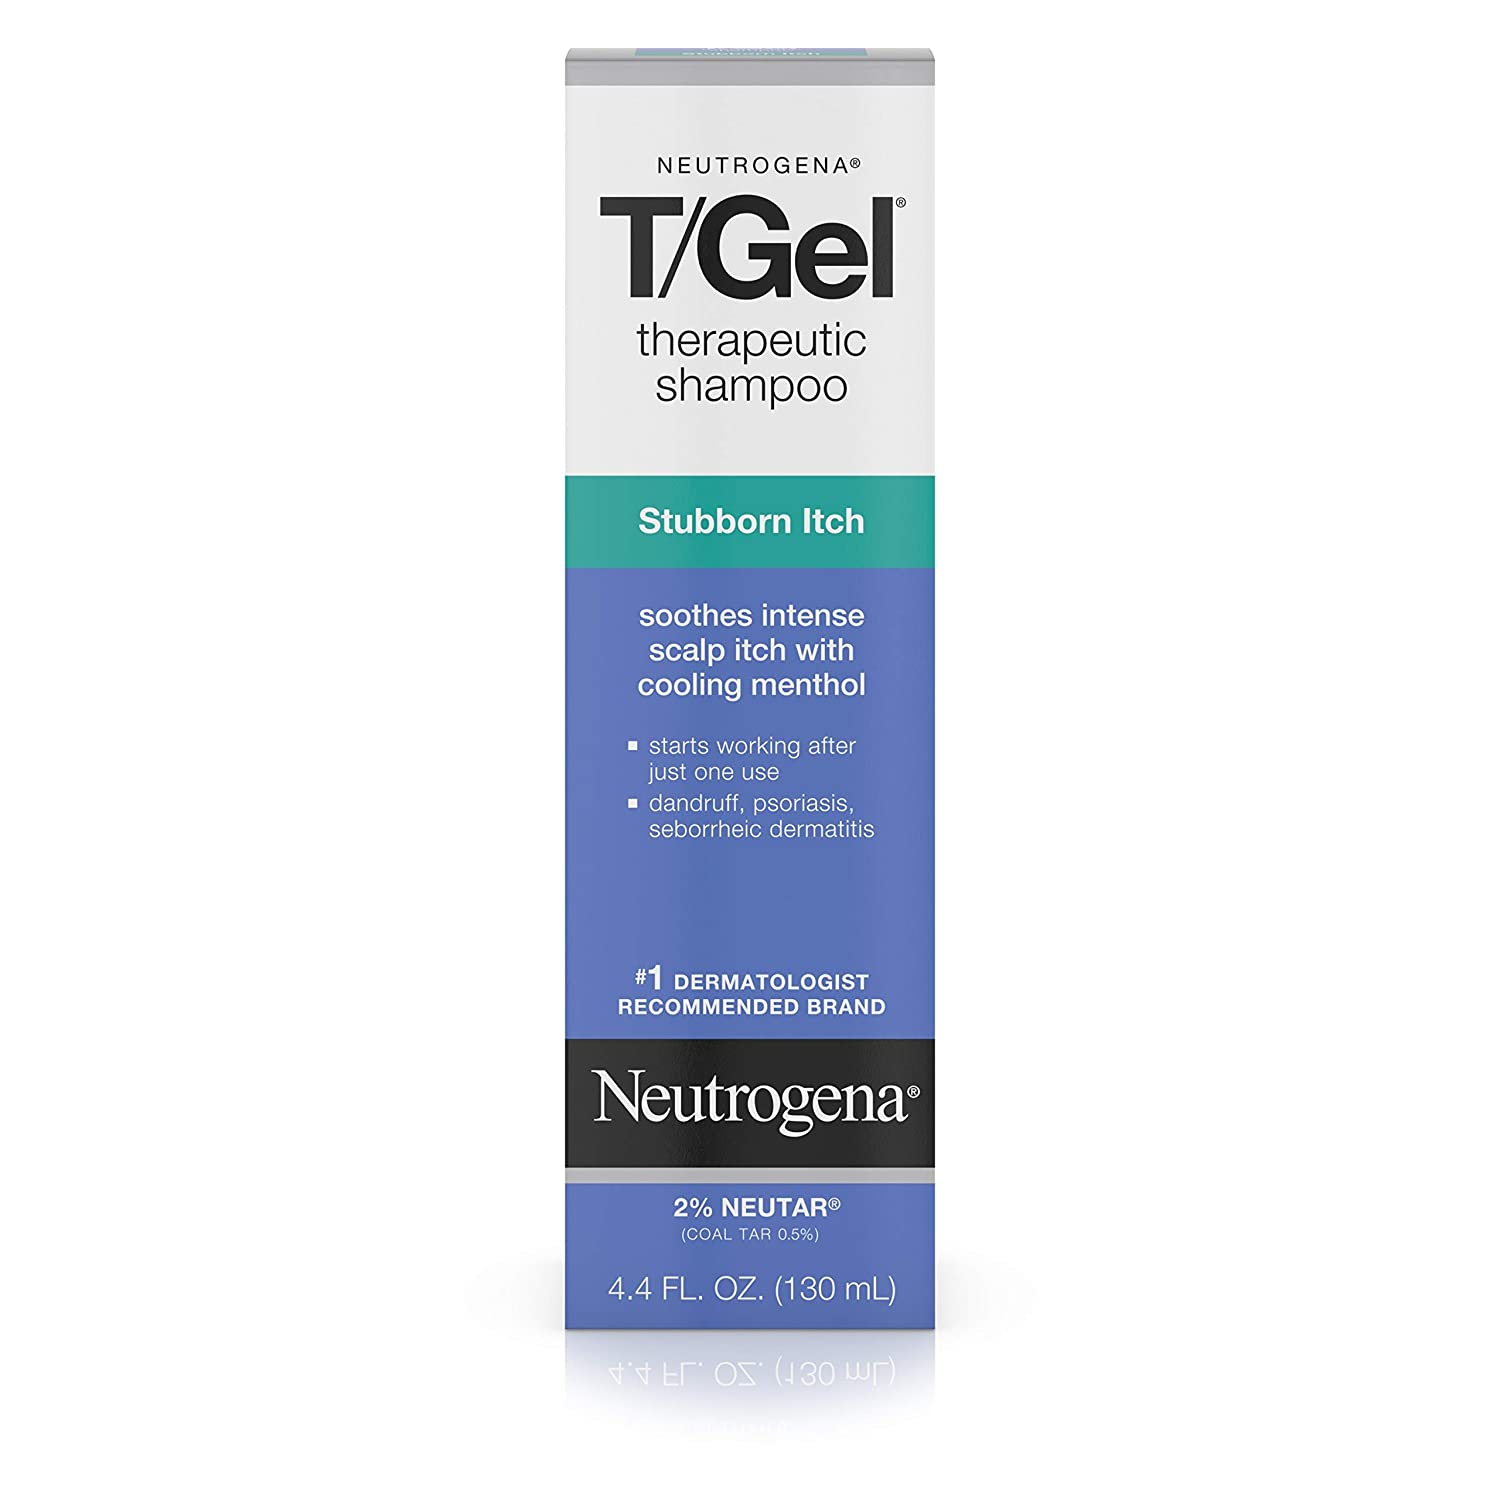 Neutrogena T/Gel Therapeutic Stubborn Itch Shampoo